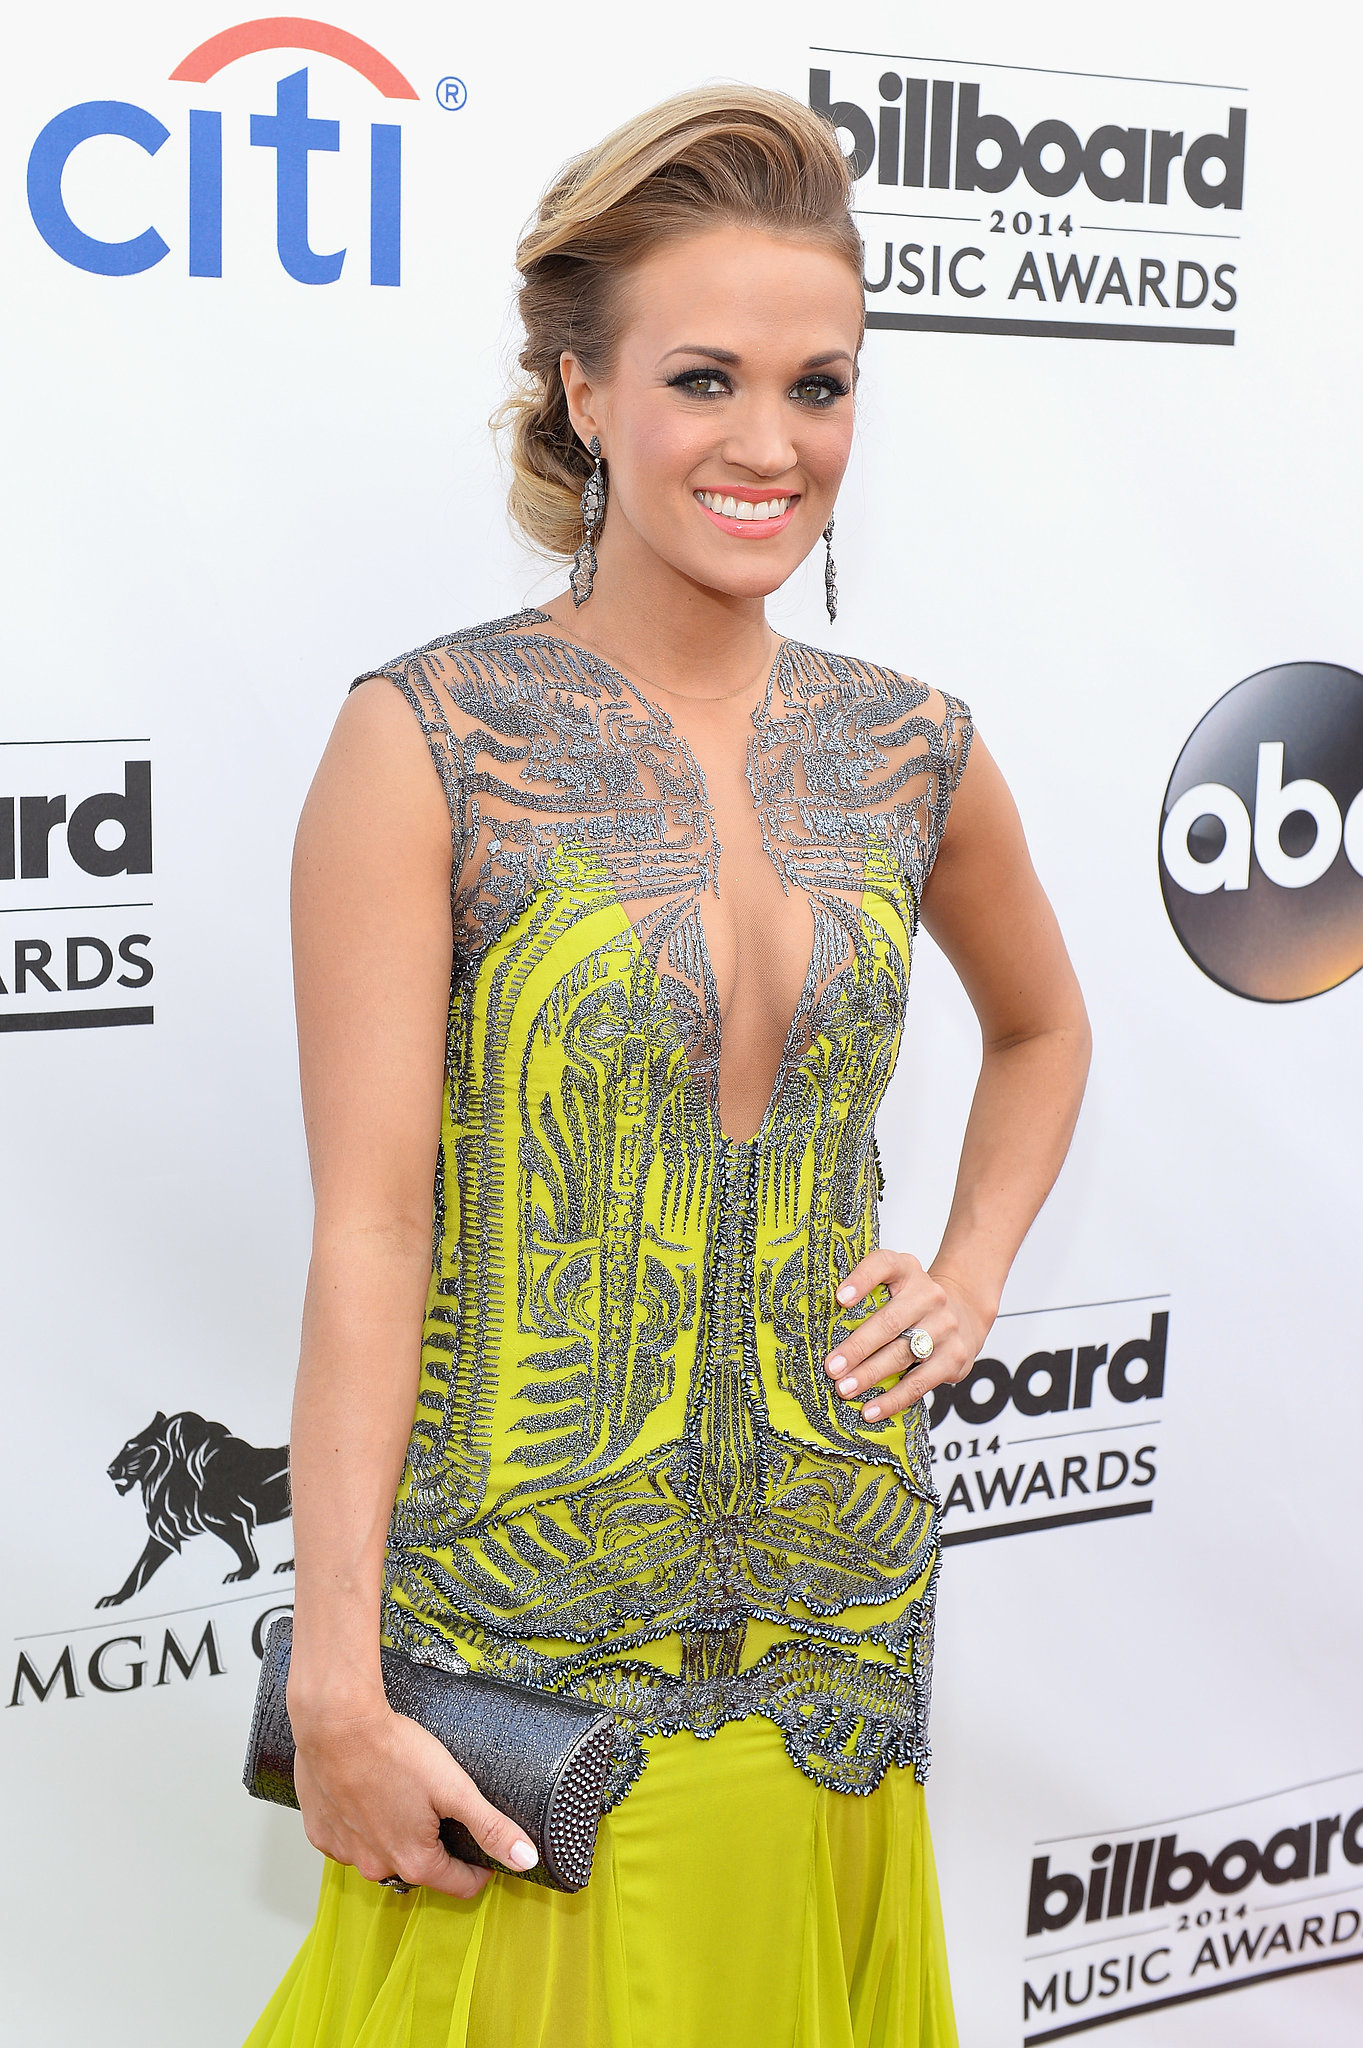 Carrie Underwood Brings a Darker Look to the Billboard Music Awards